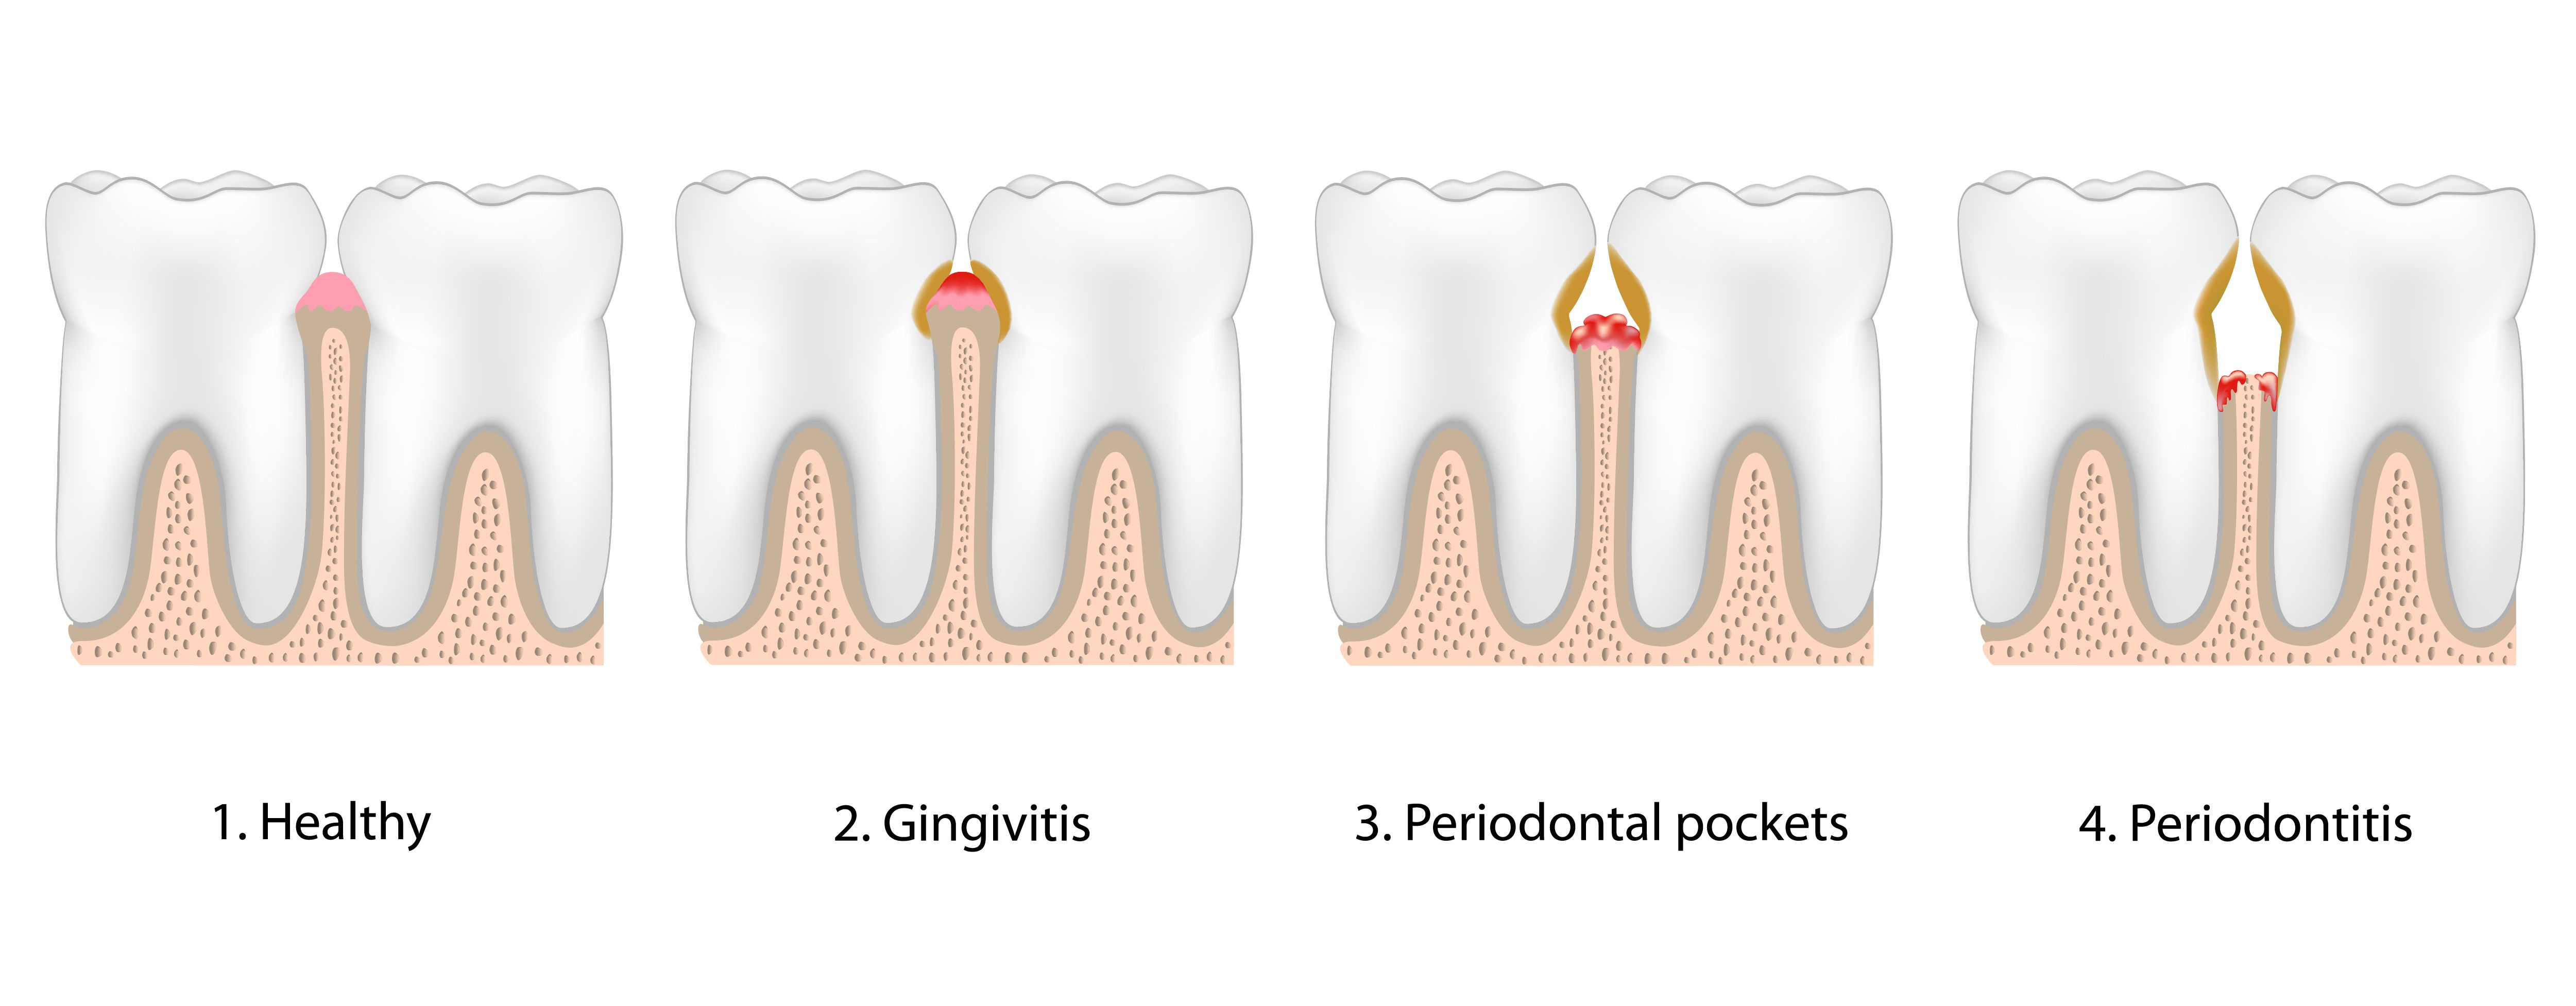 Illustrated chart showing the stages of gum disease